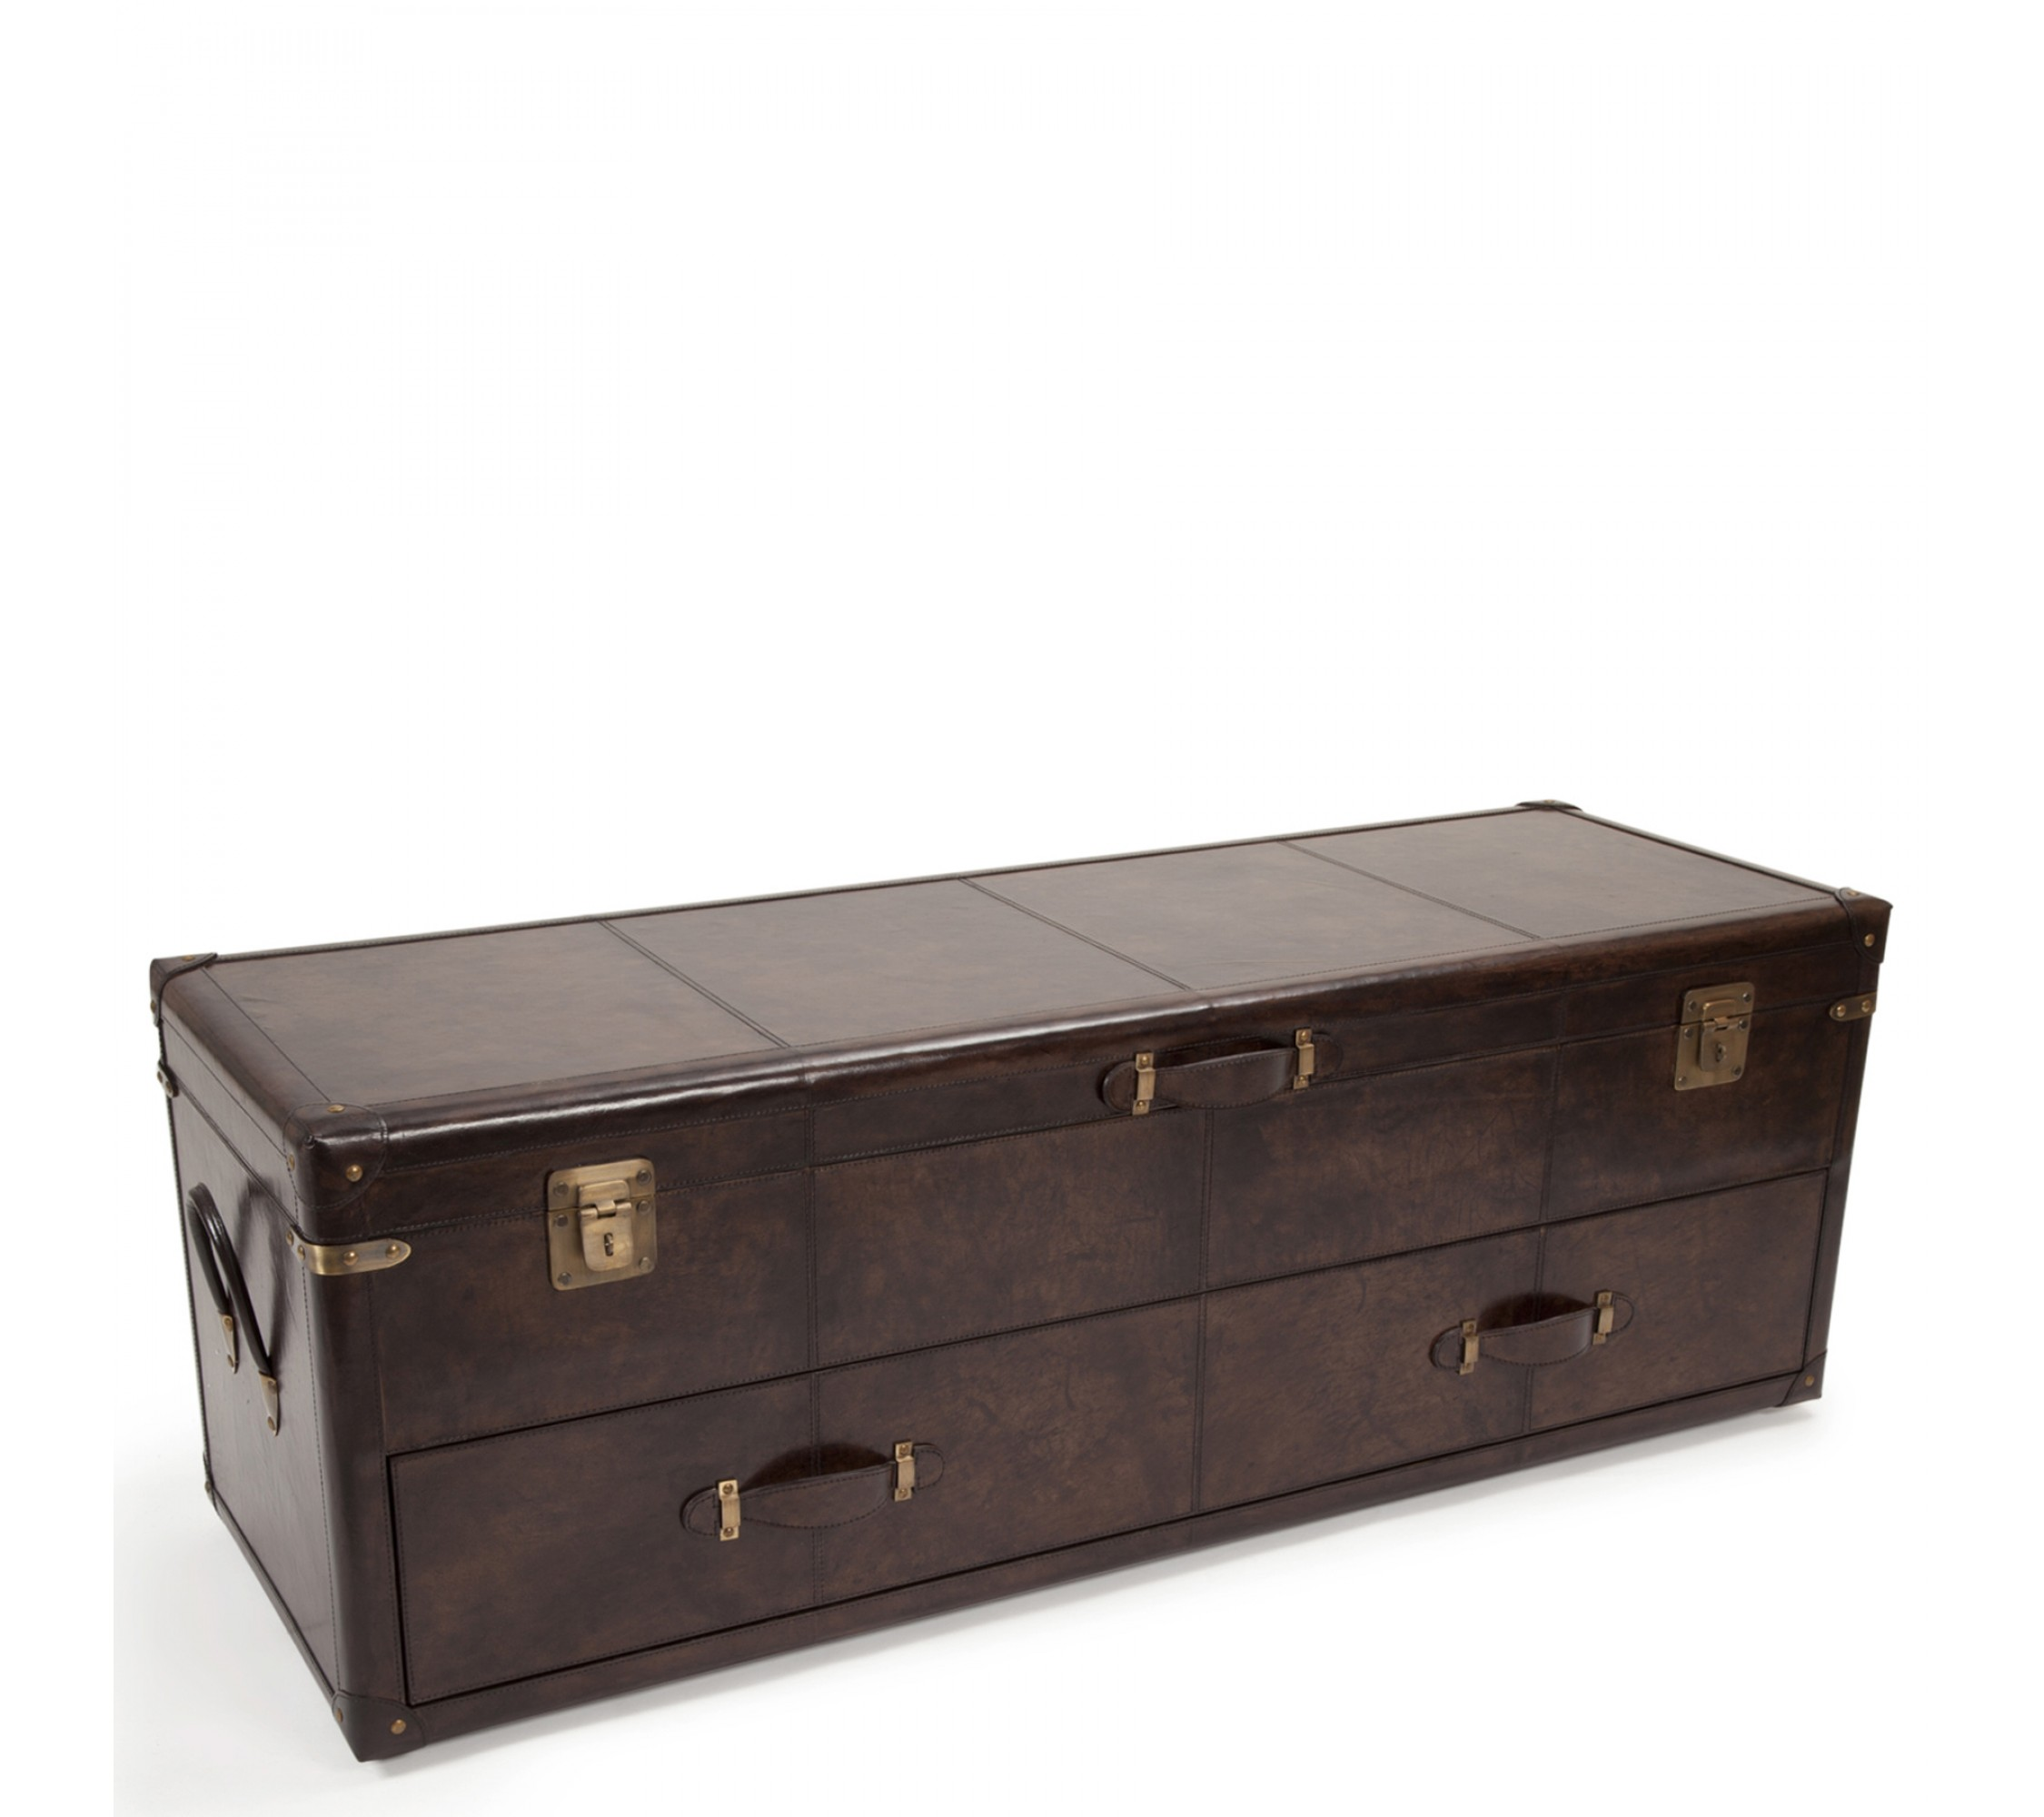 Ledertruhe - Hamilton Trunk